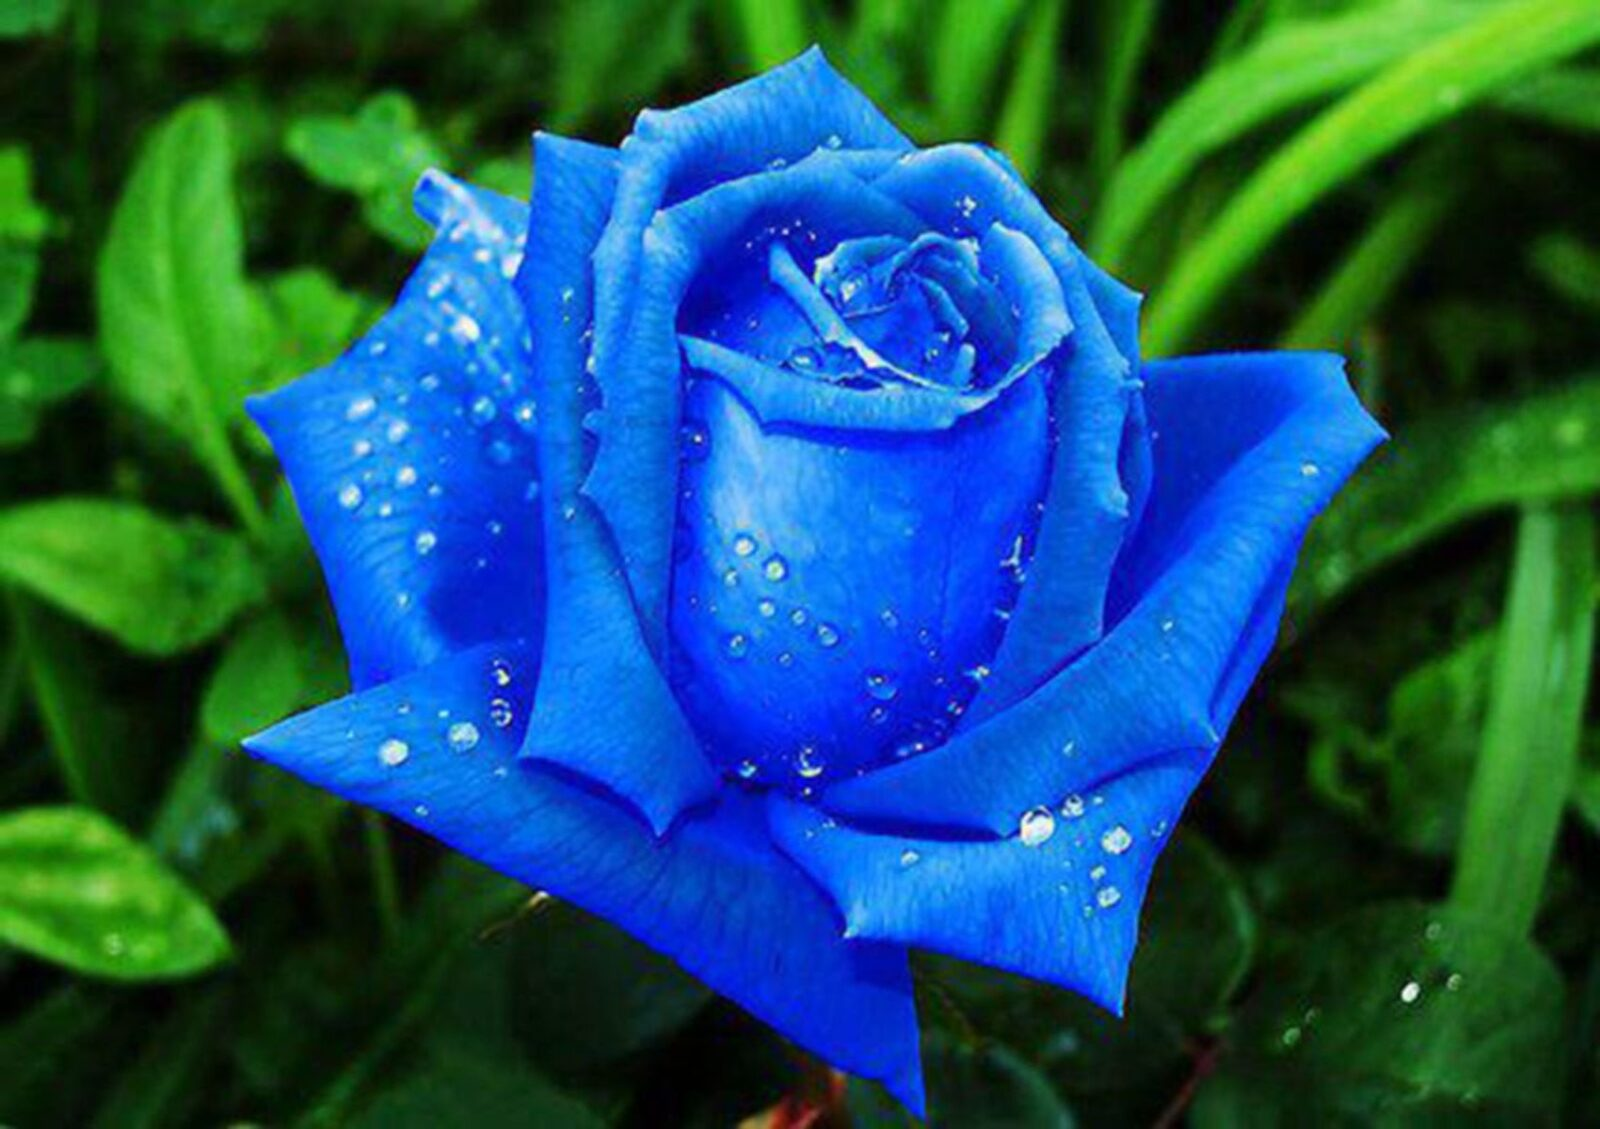 595 Free images of Blue Rose